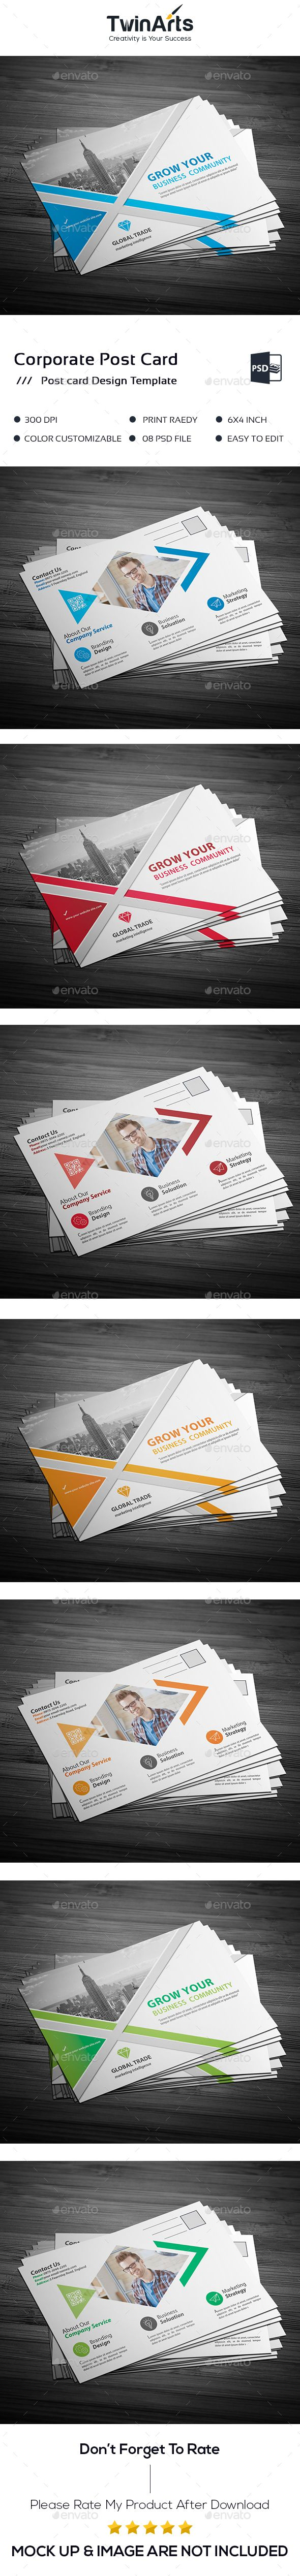 2259 best Visit Card CV & Web Design images on Pinterest